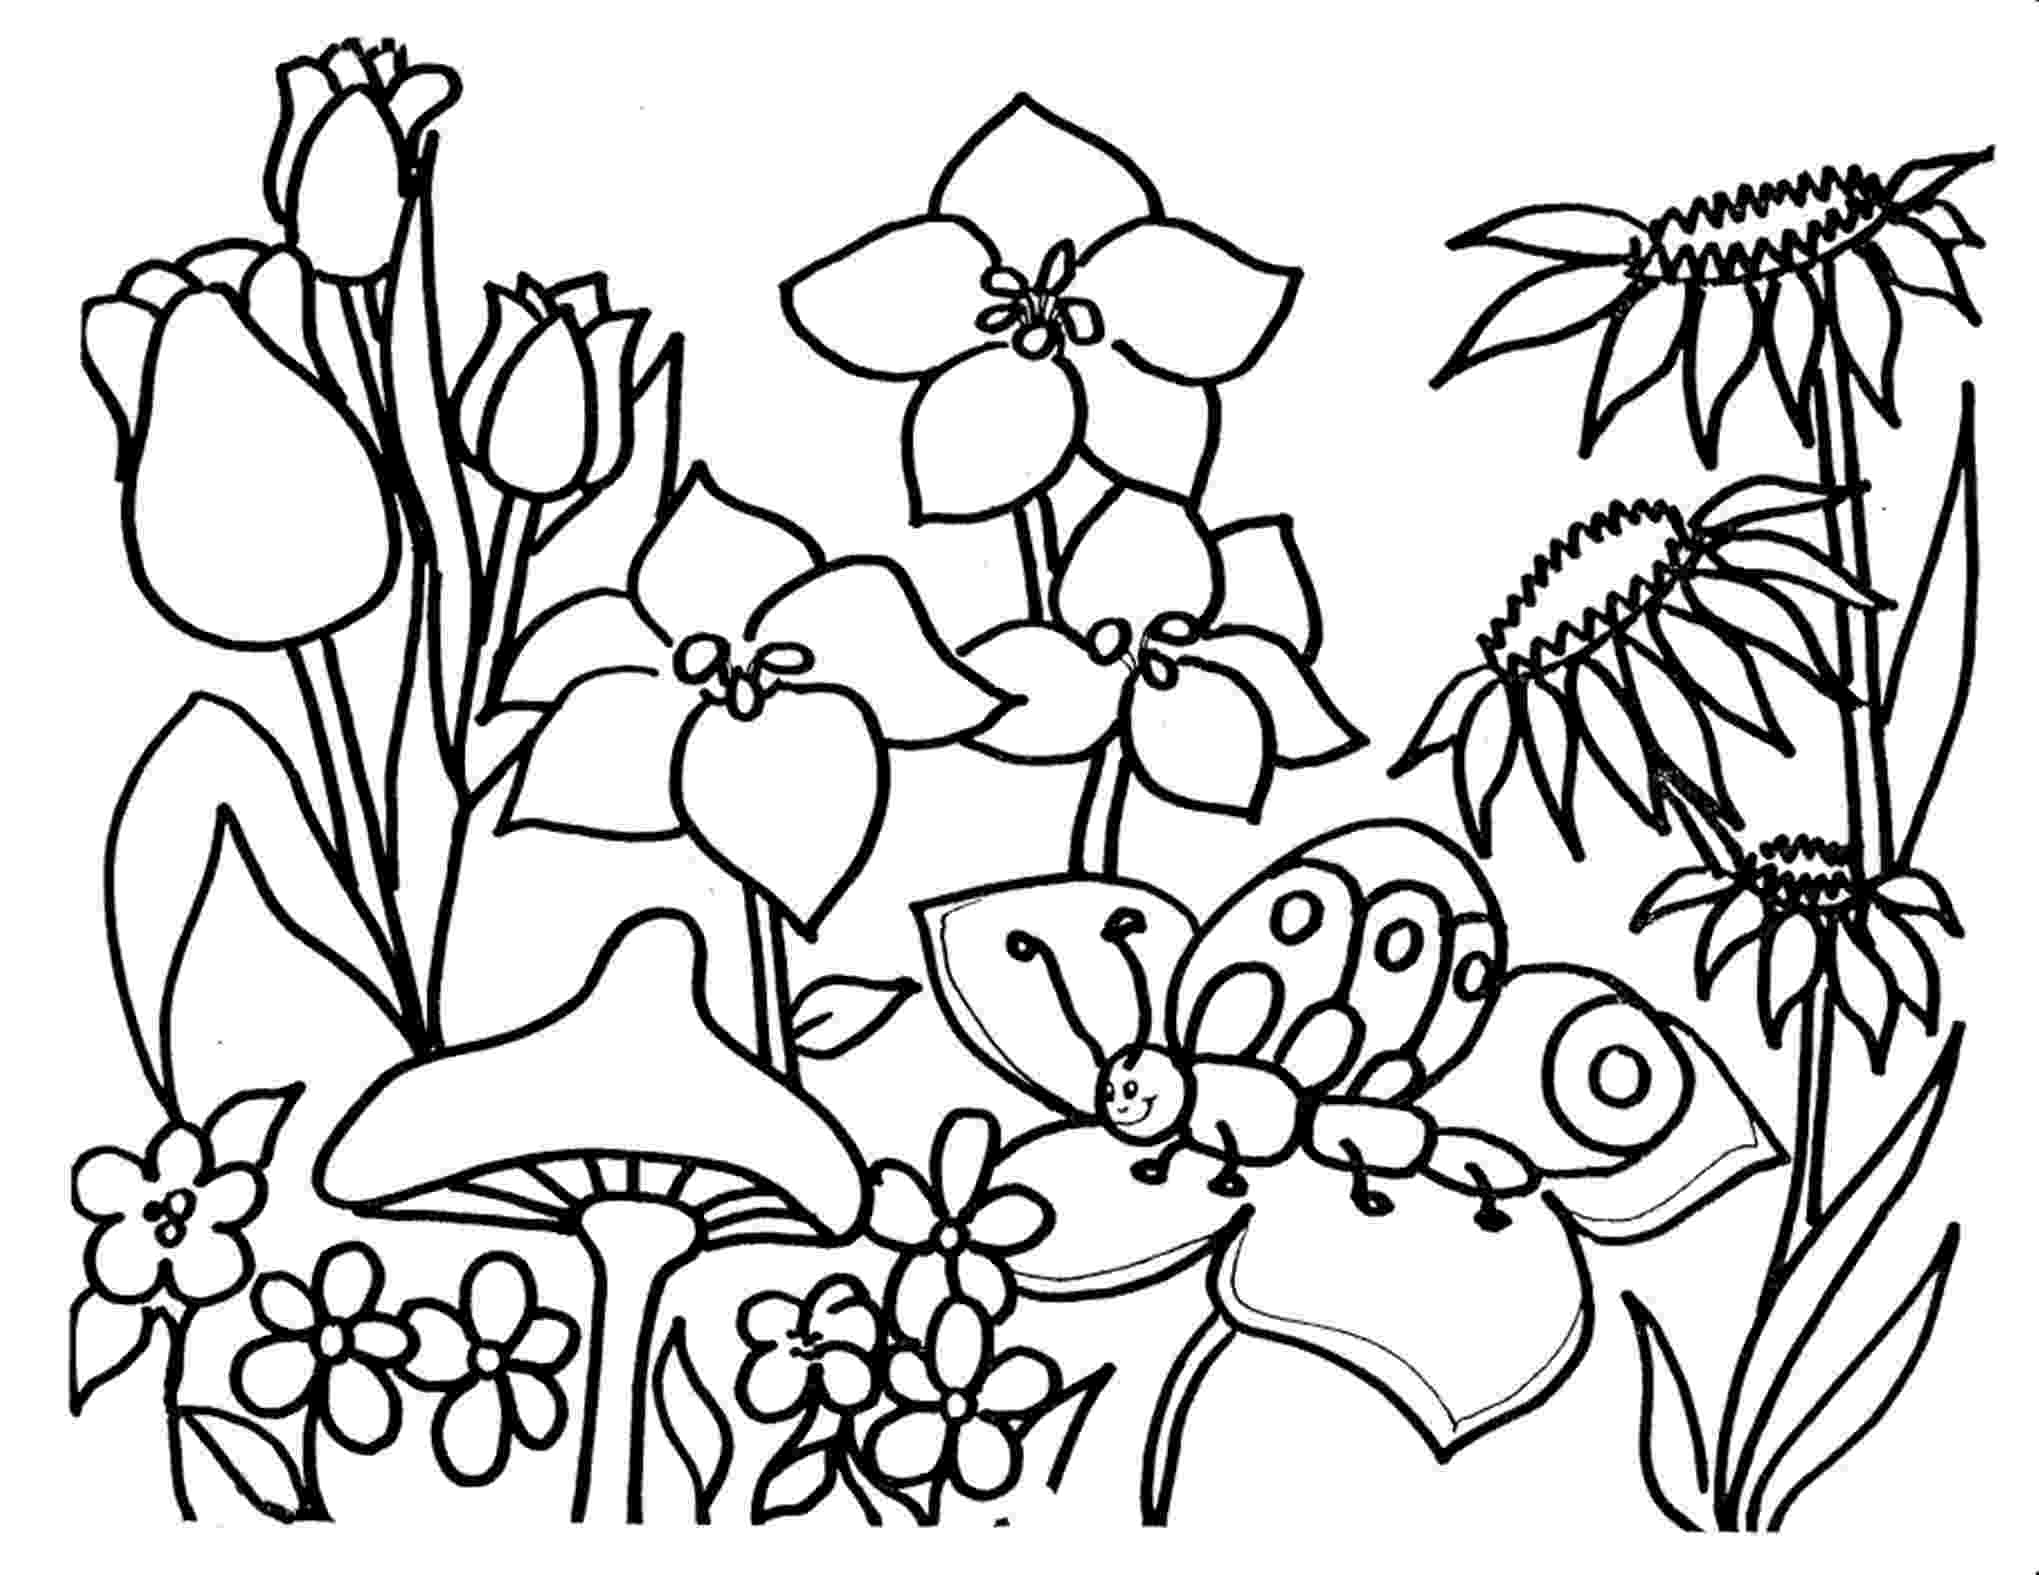 picture of flower for colouring simple flower coloring pages getcoloringpagescom picture colouring flower of for